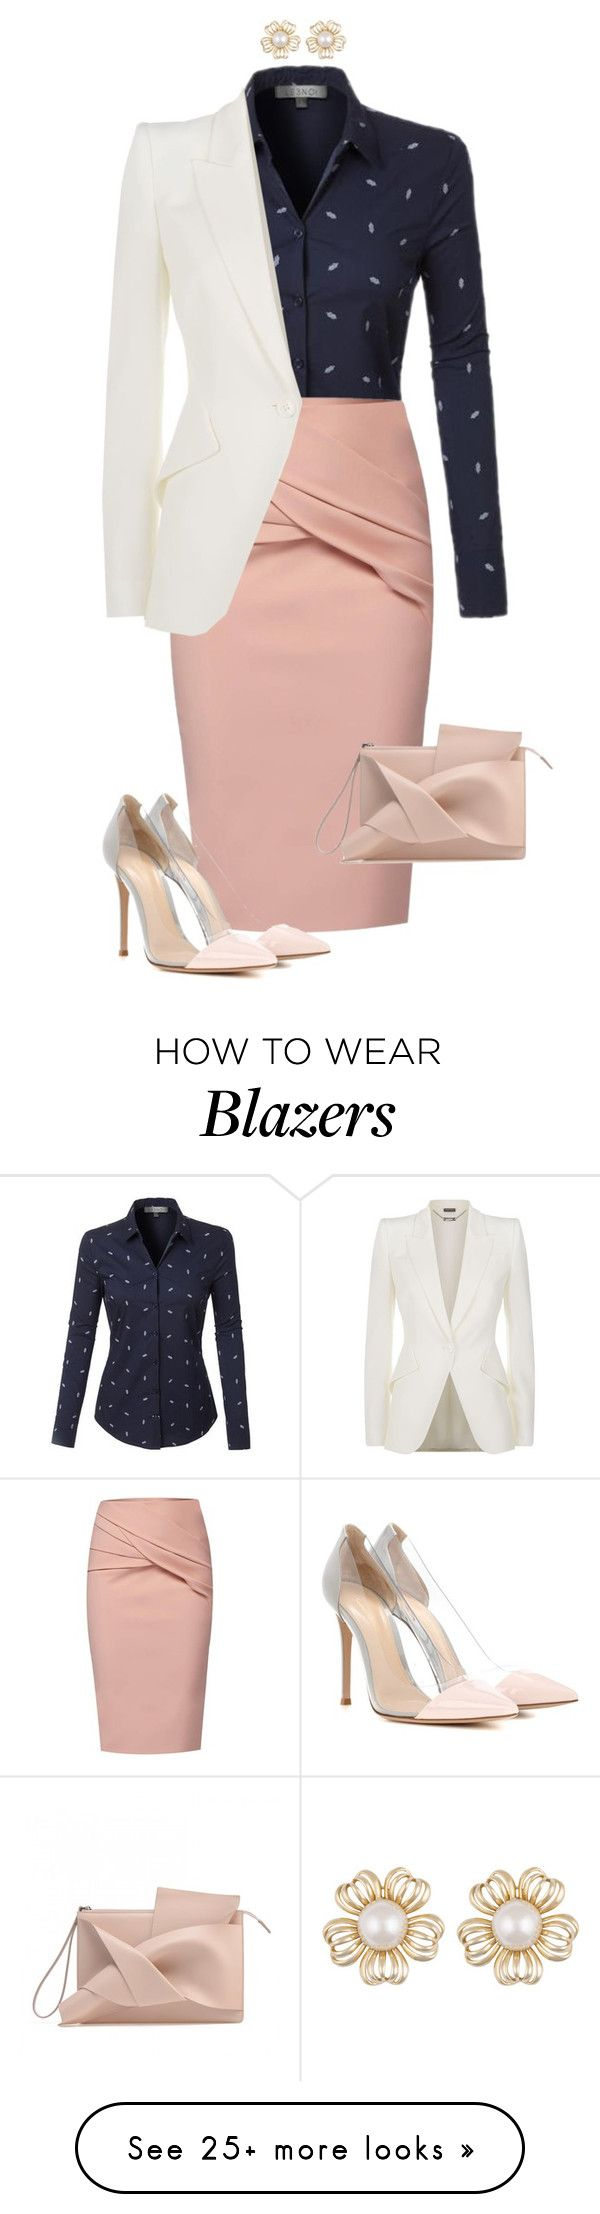 """#675"" by anne1999 on Polyvore featuring LE3NO, WtR, Alexander McQueen and Gianvito Rossi"